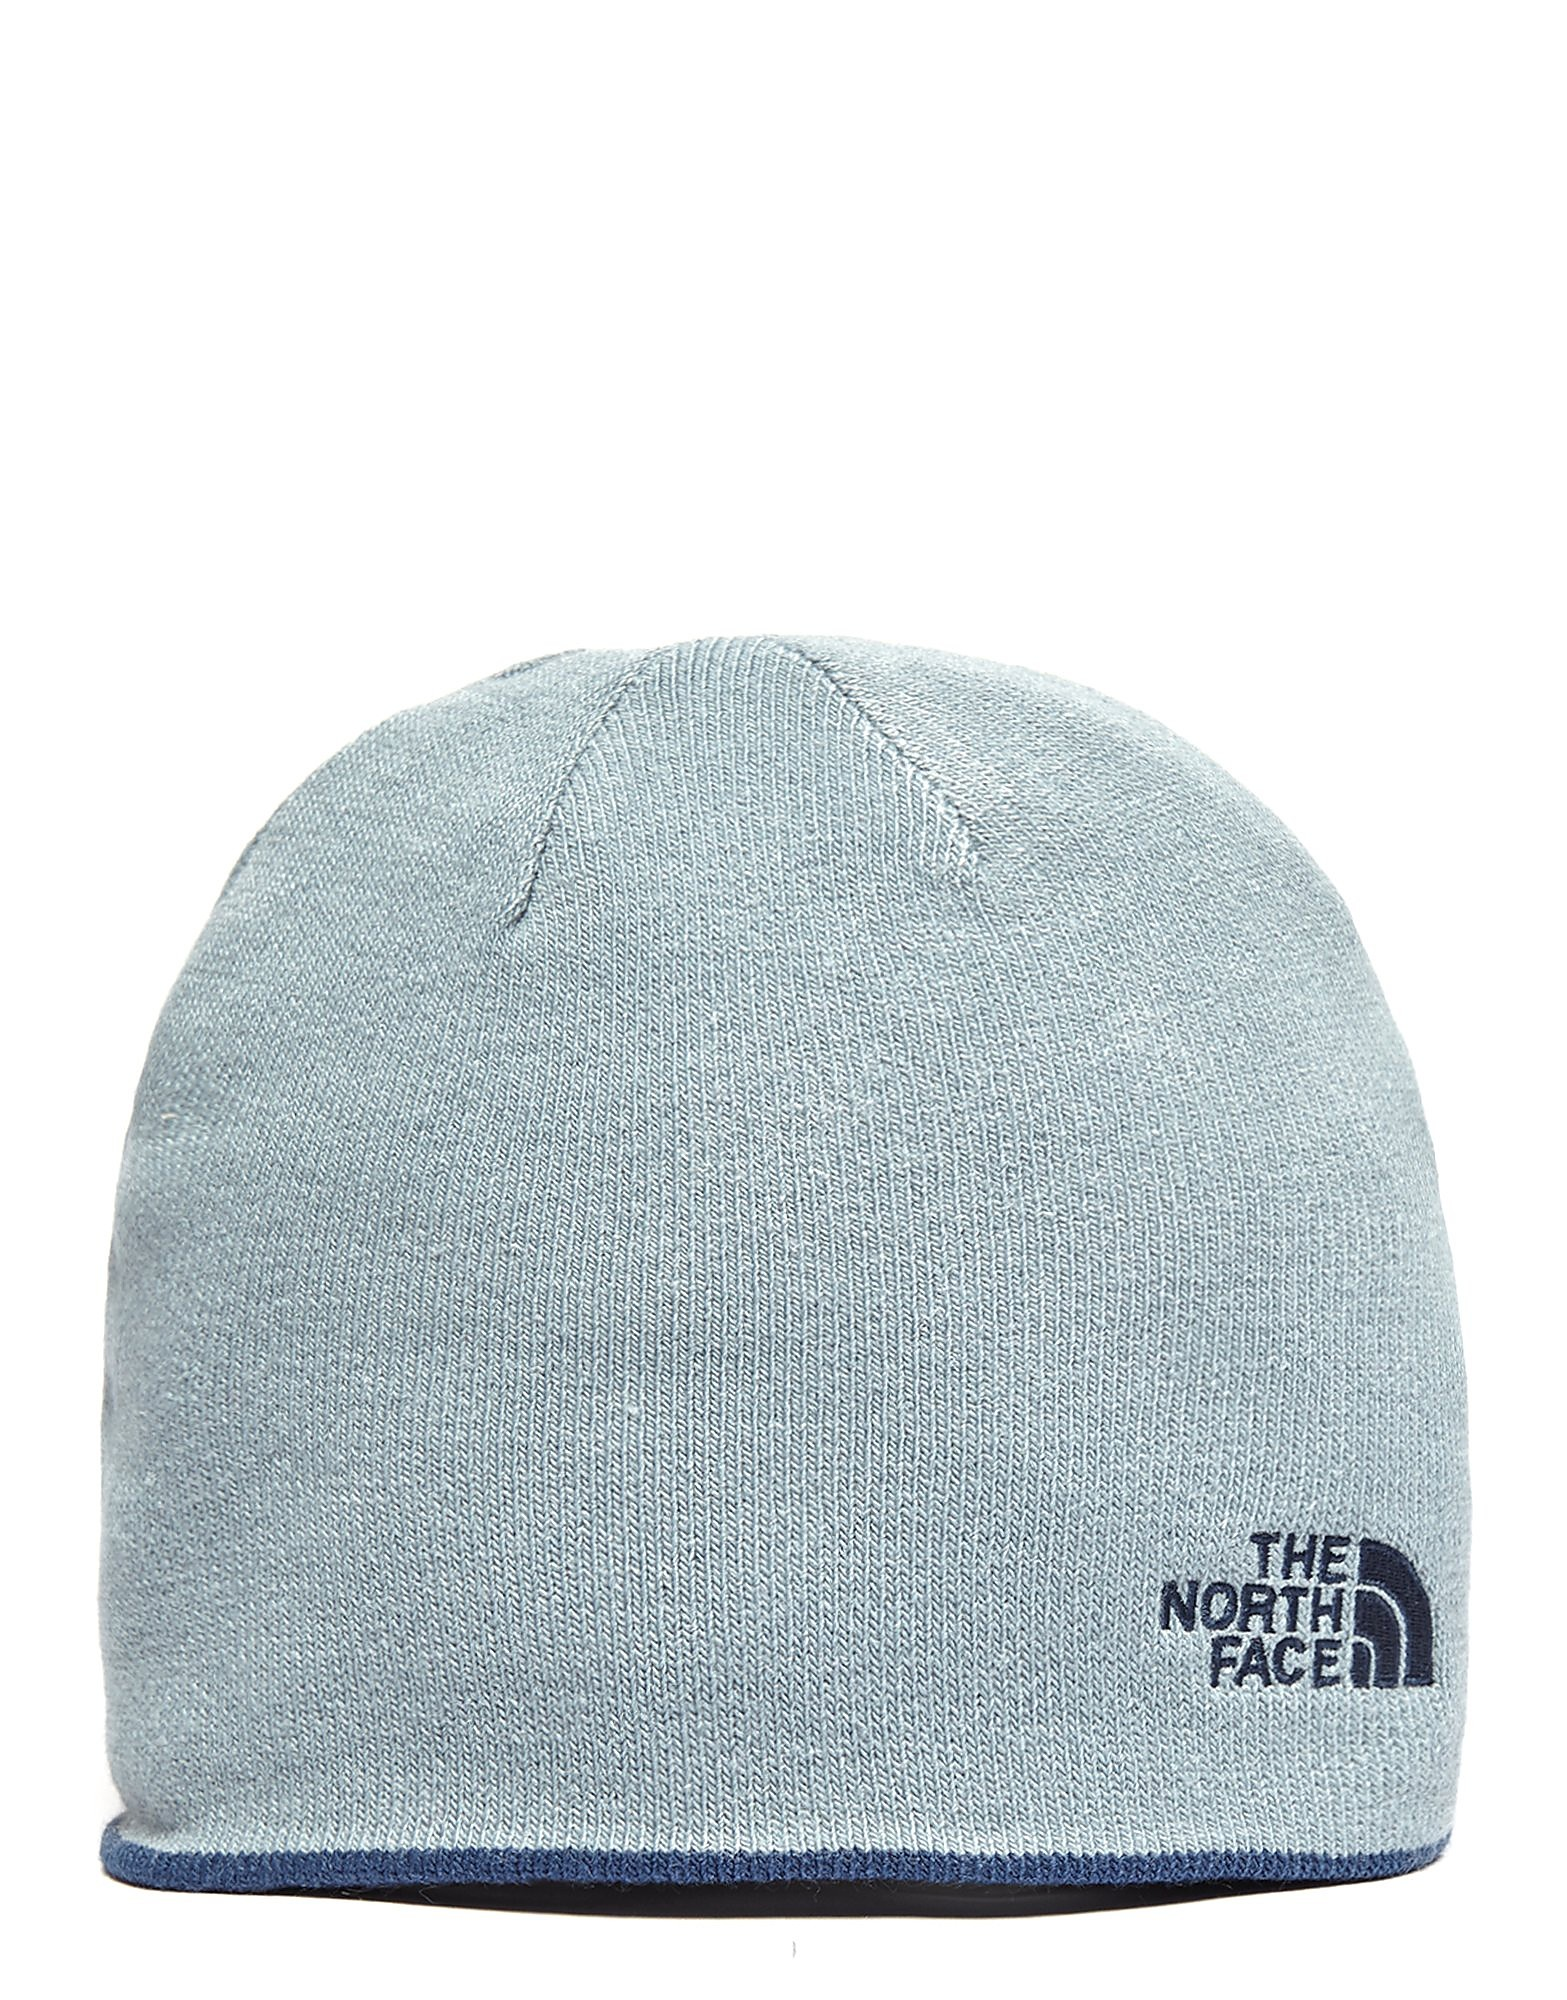 The North Face Reversible Knitted Beanie